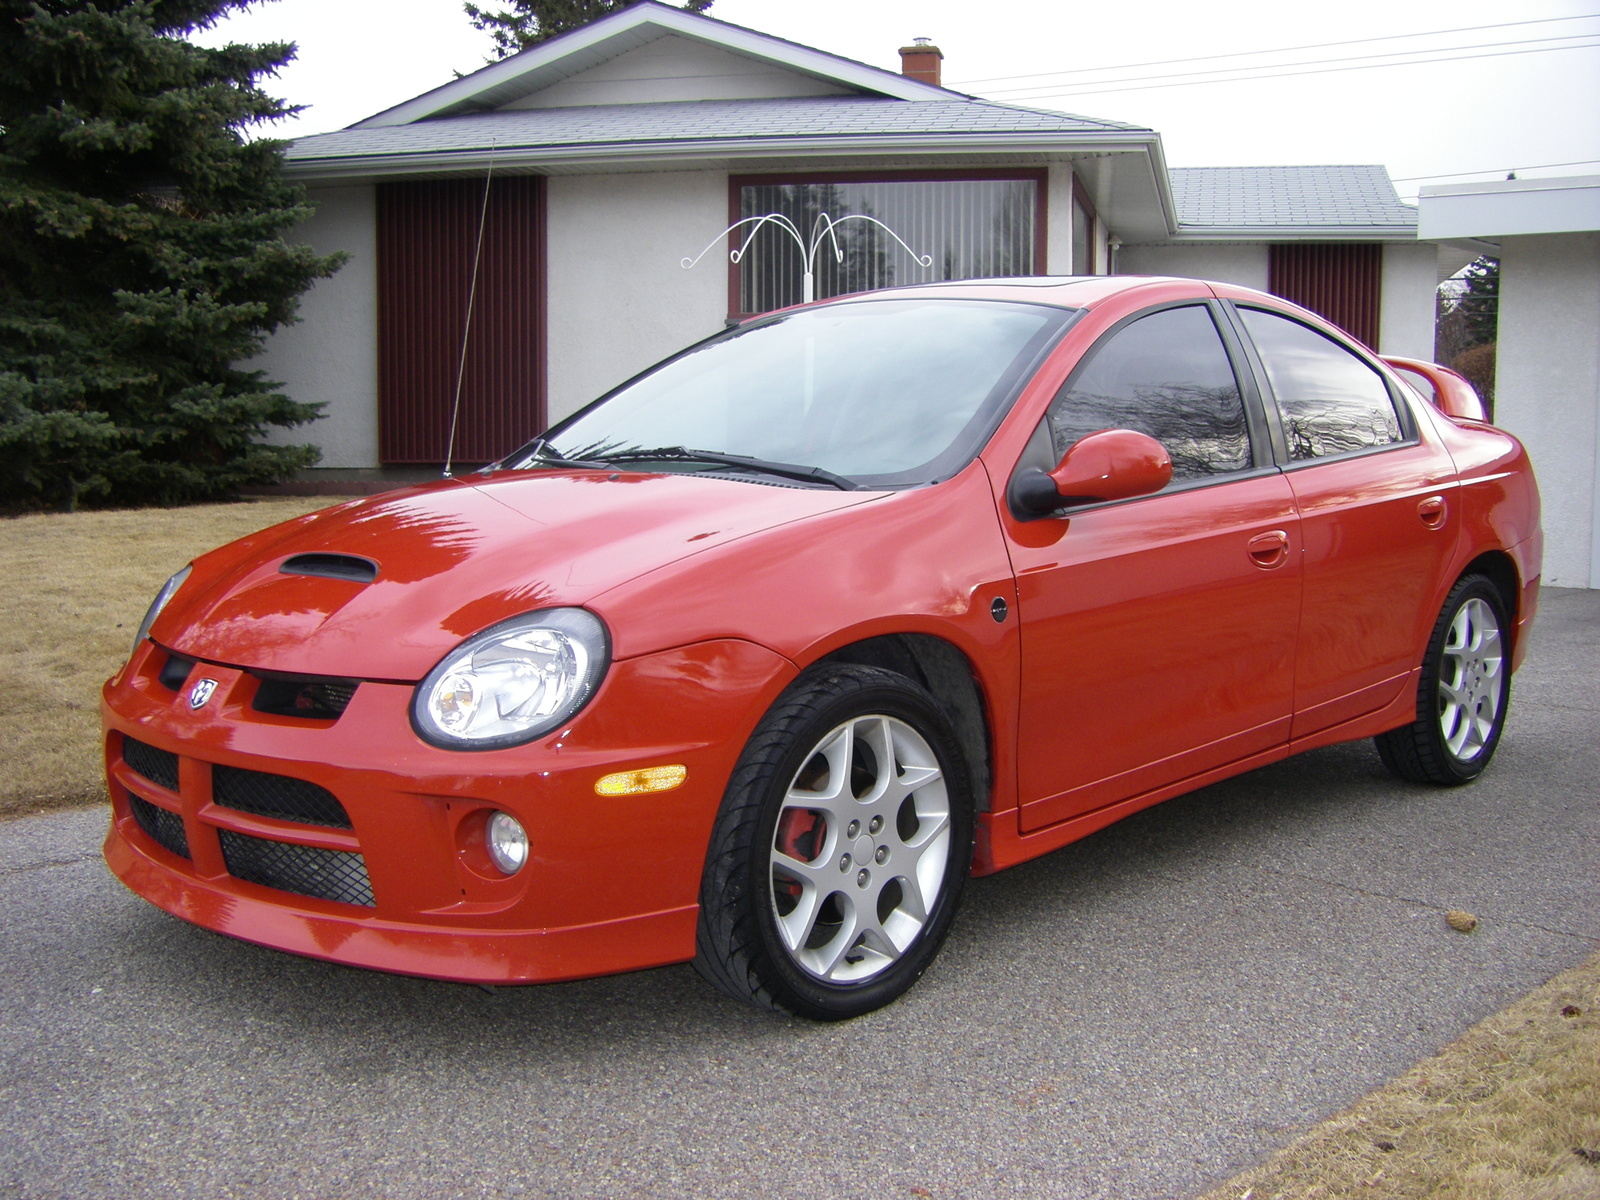 2004 Dodge Neon Srt 4 Overview C5427 on dodge viper srt 10